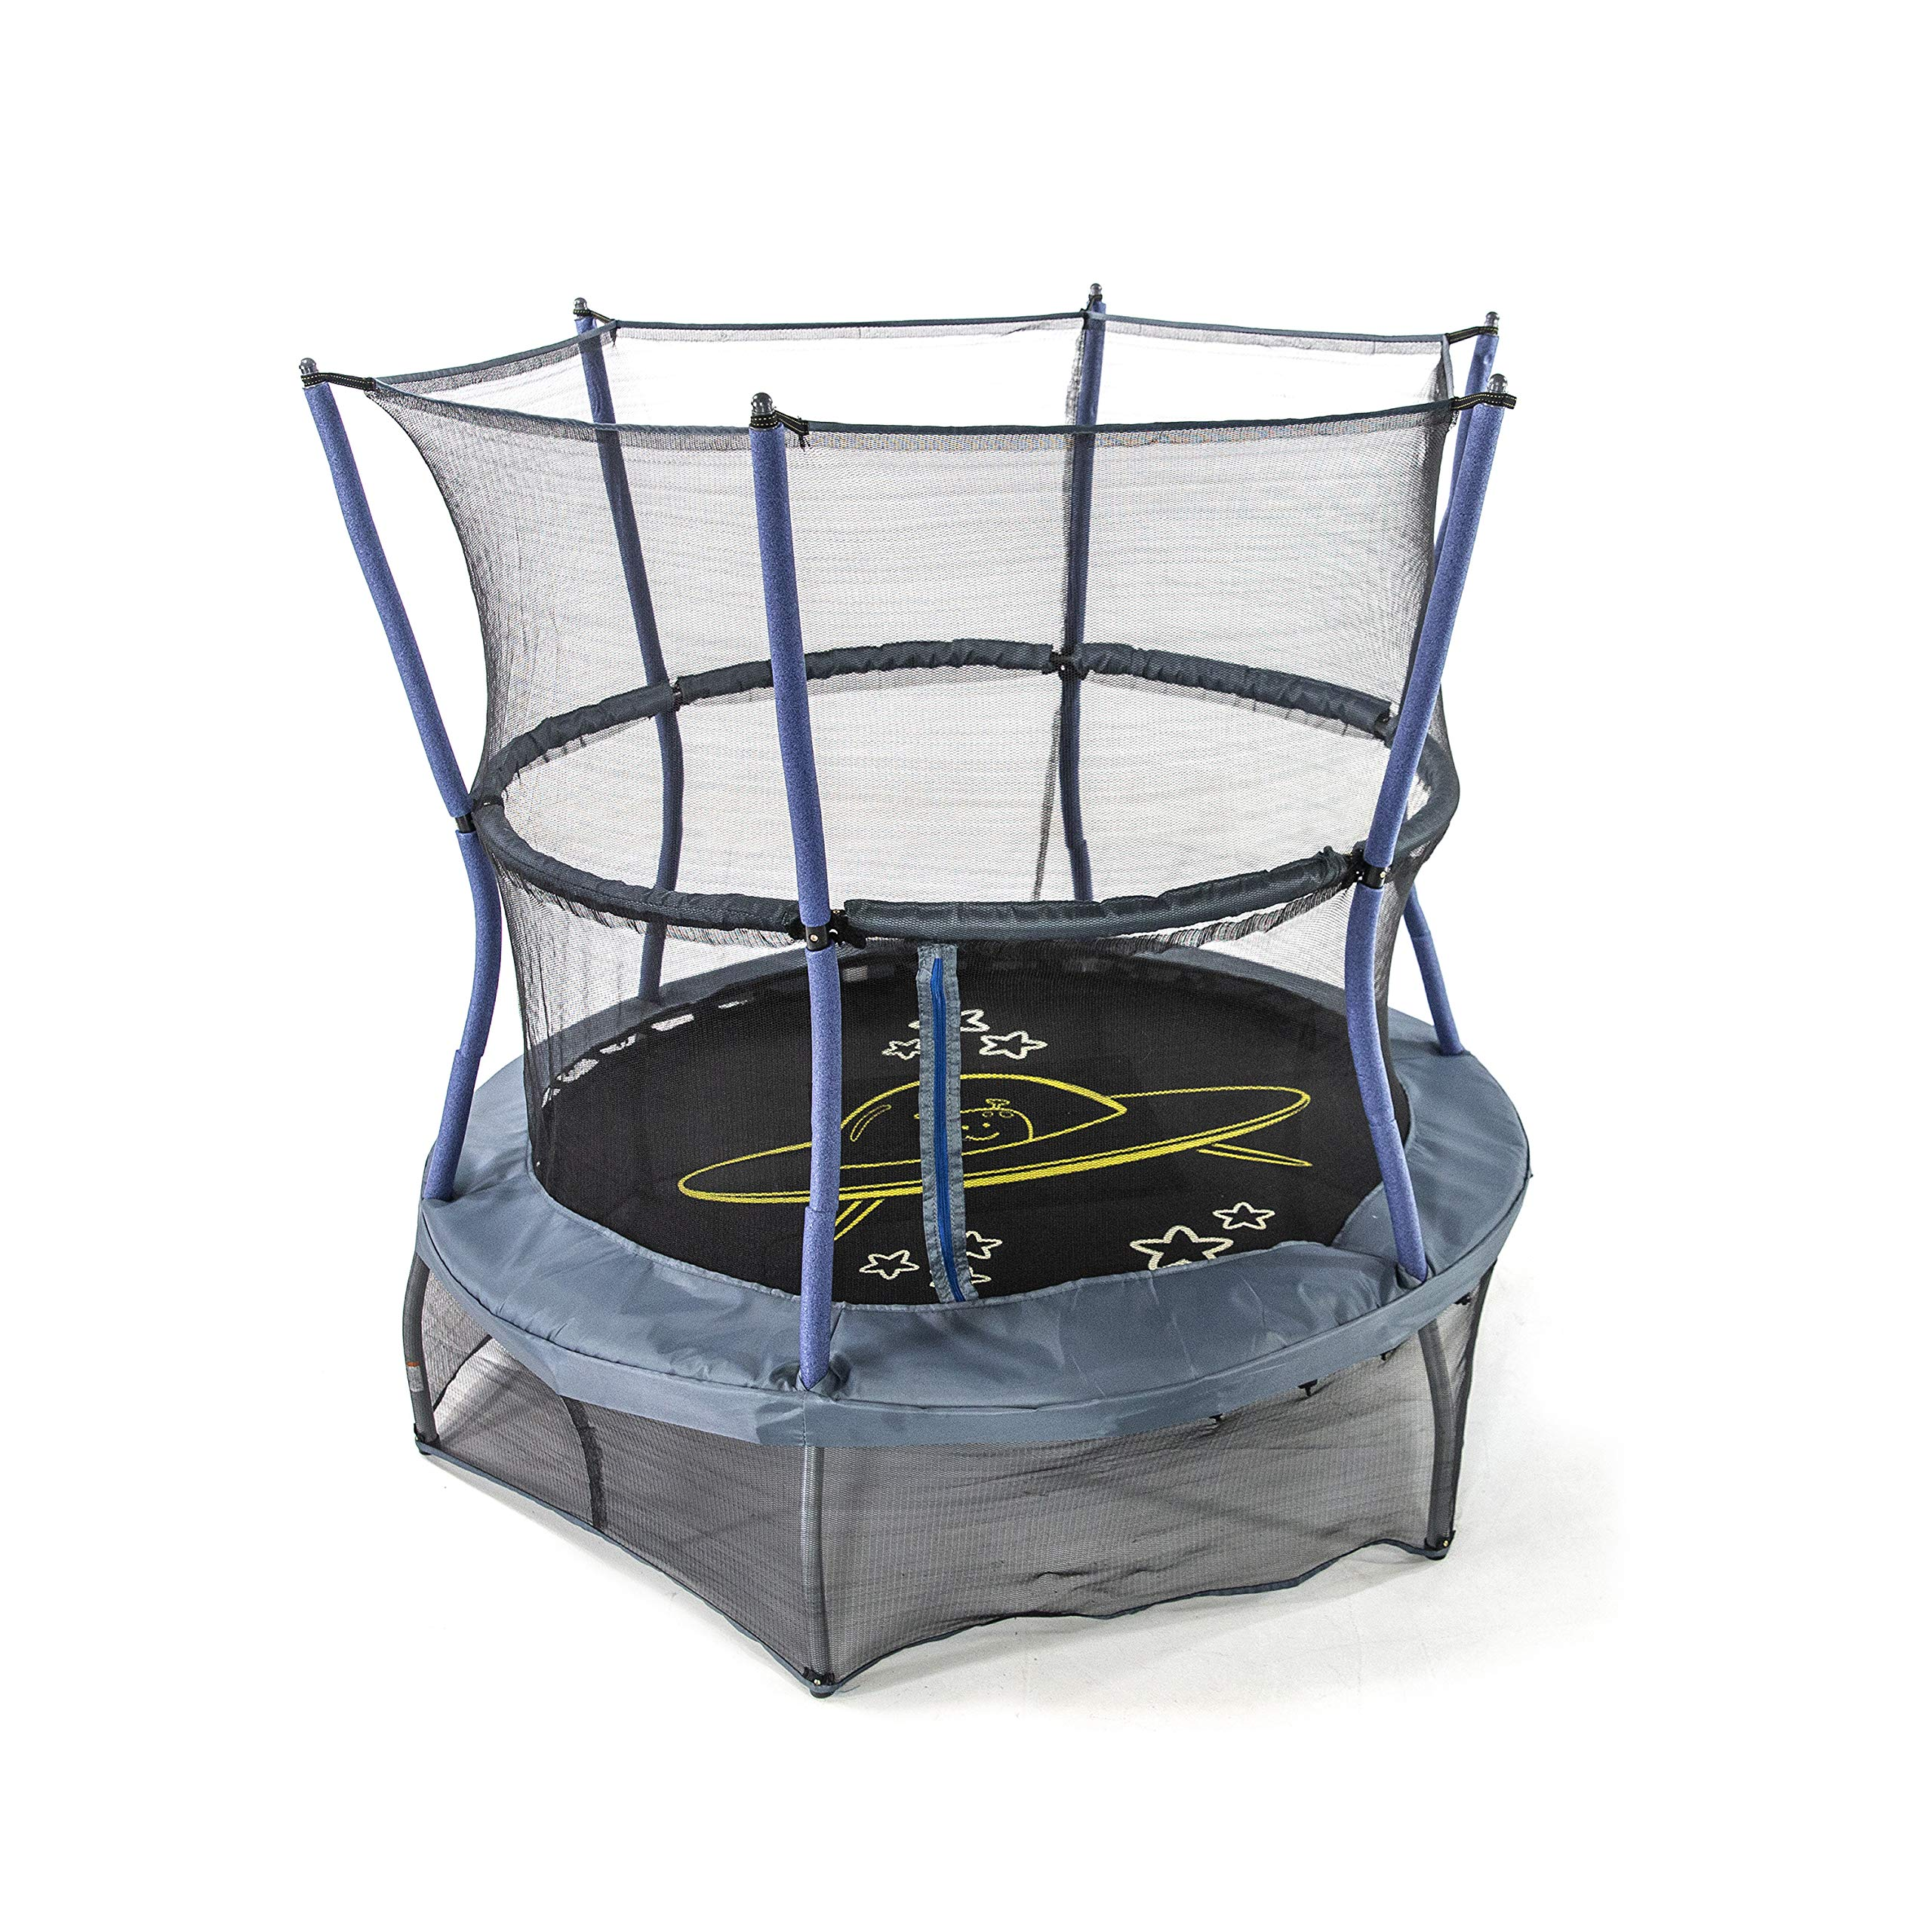 Durable Fitness Trampoline Kids Trampoline with Enclosure Net Indoor Outdoor Trampoline for Boys Grils Children Toddler 1.4m//55inch Colorful Trampoline with Safety Net,Seaballs,Basketball Hoop